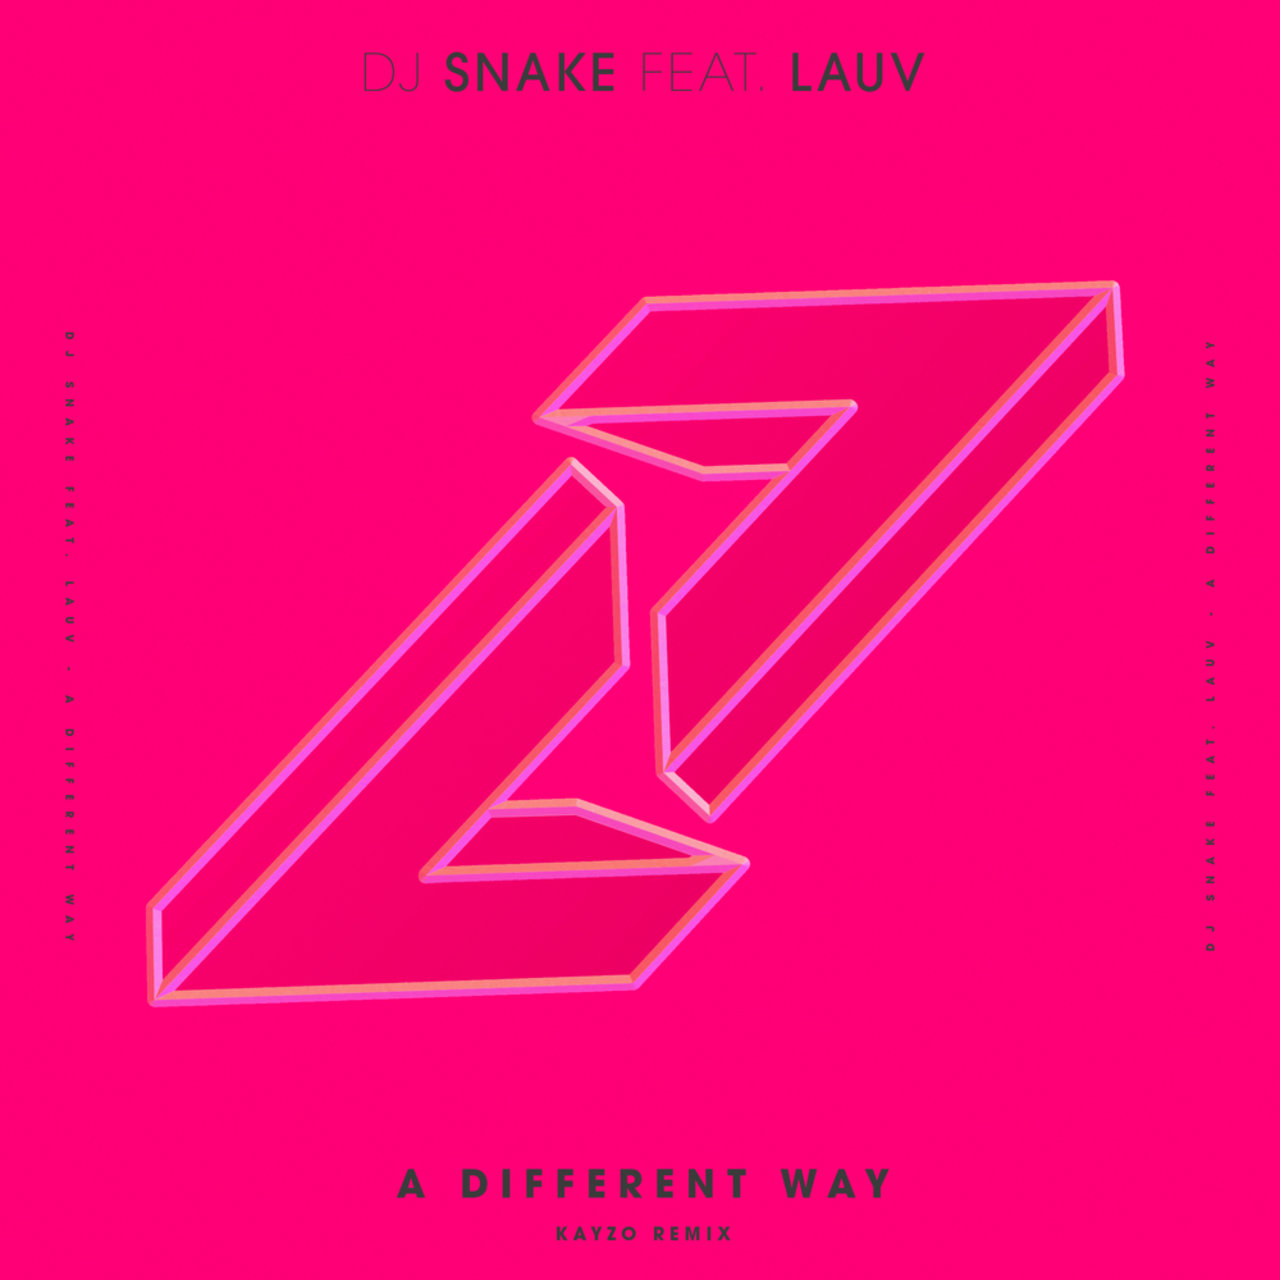 A Different Way (Kayzo Remix)